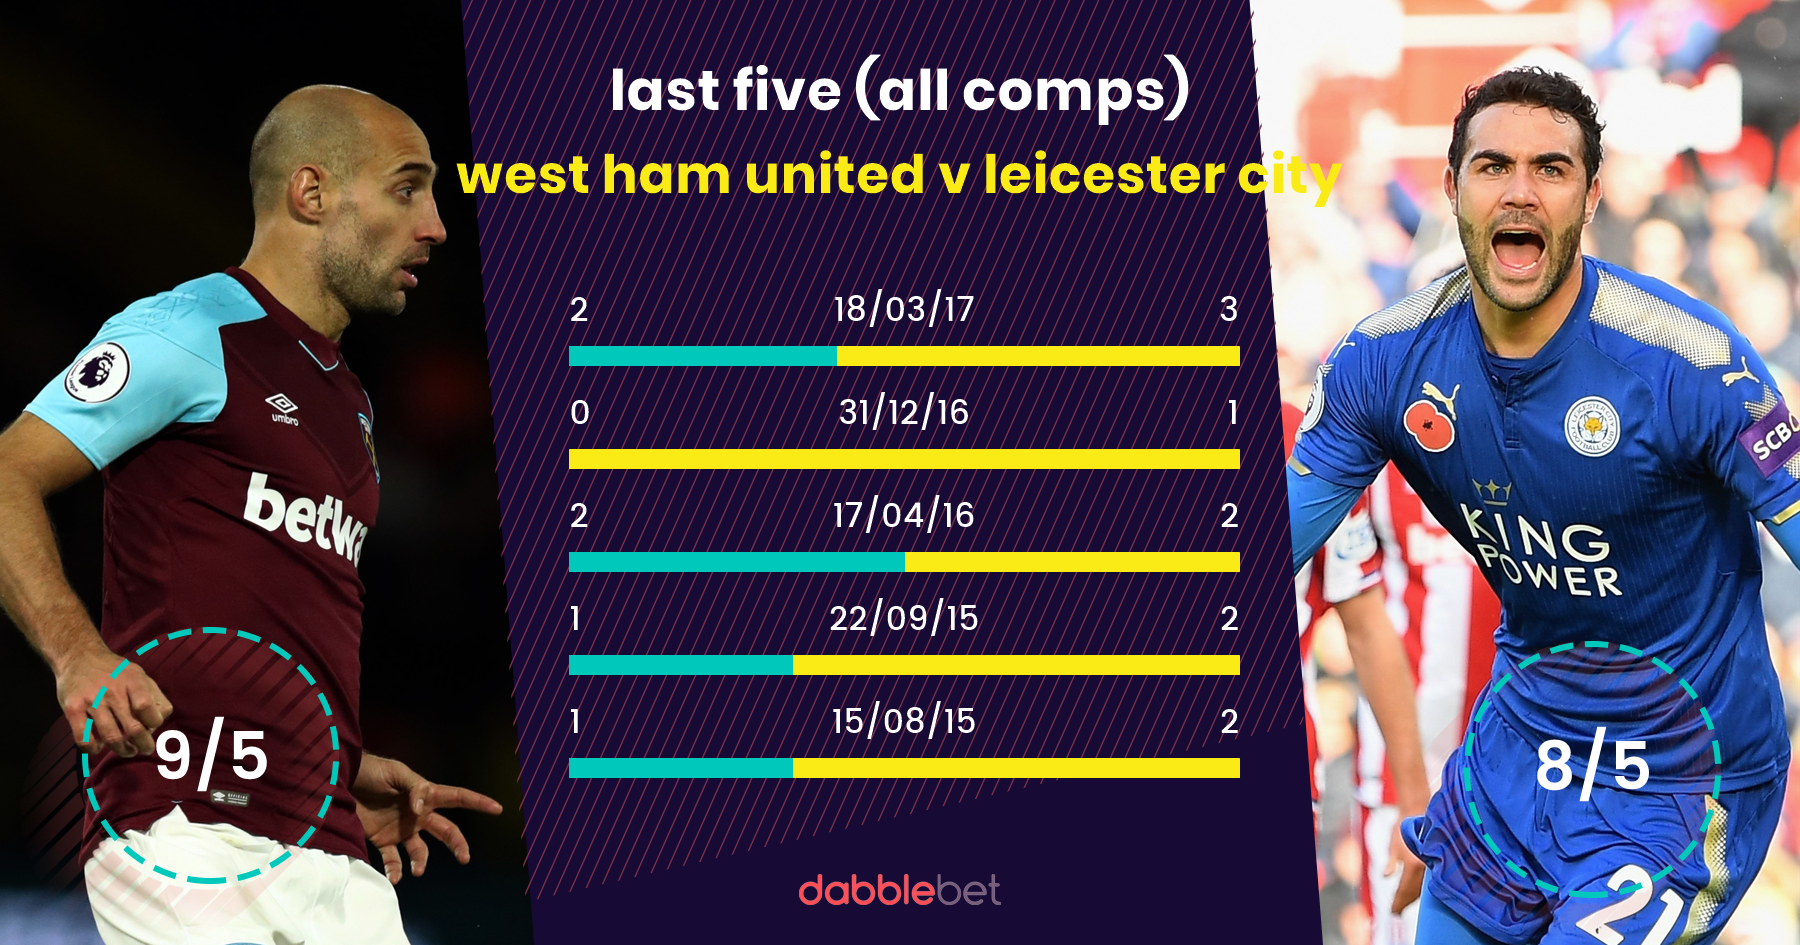 West ham leicester city graphic